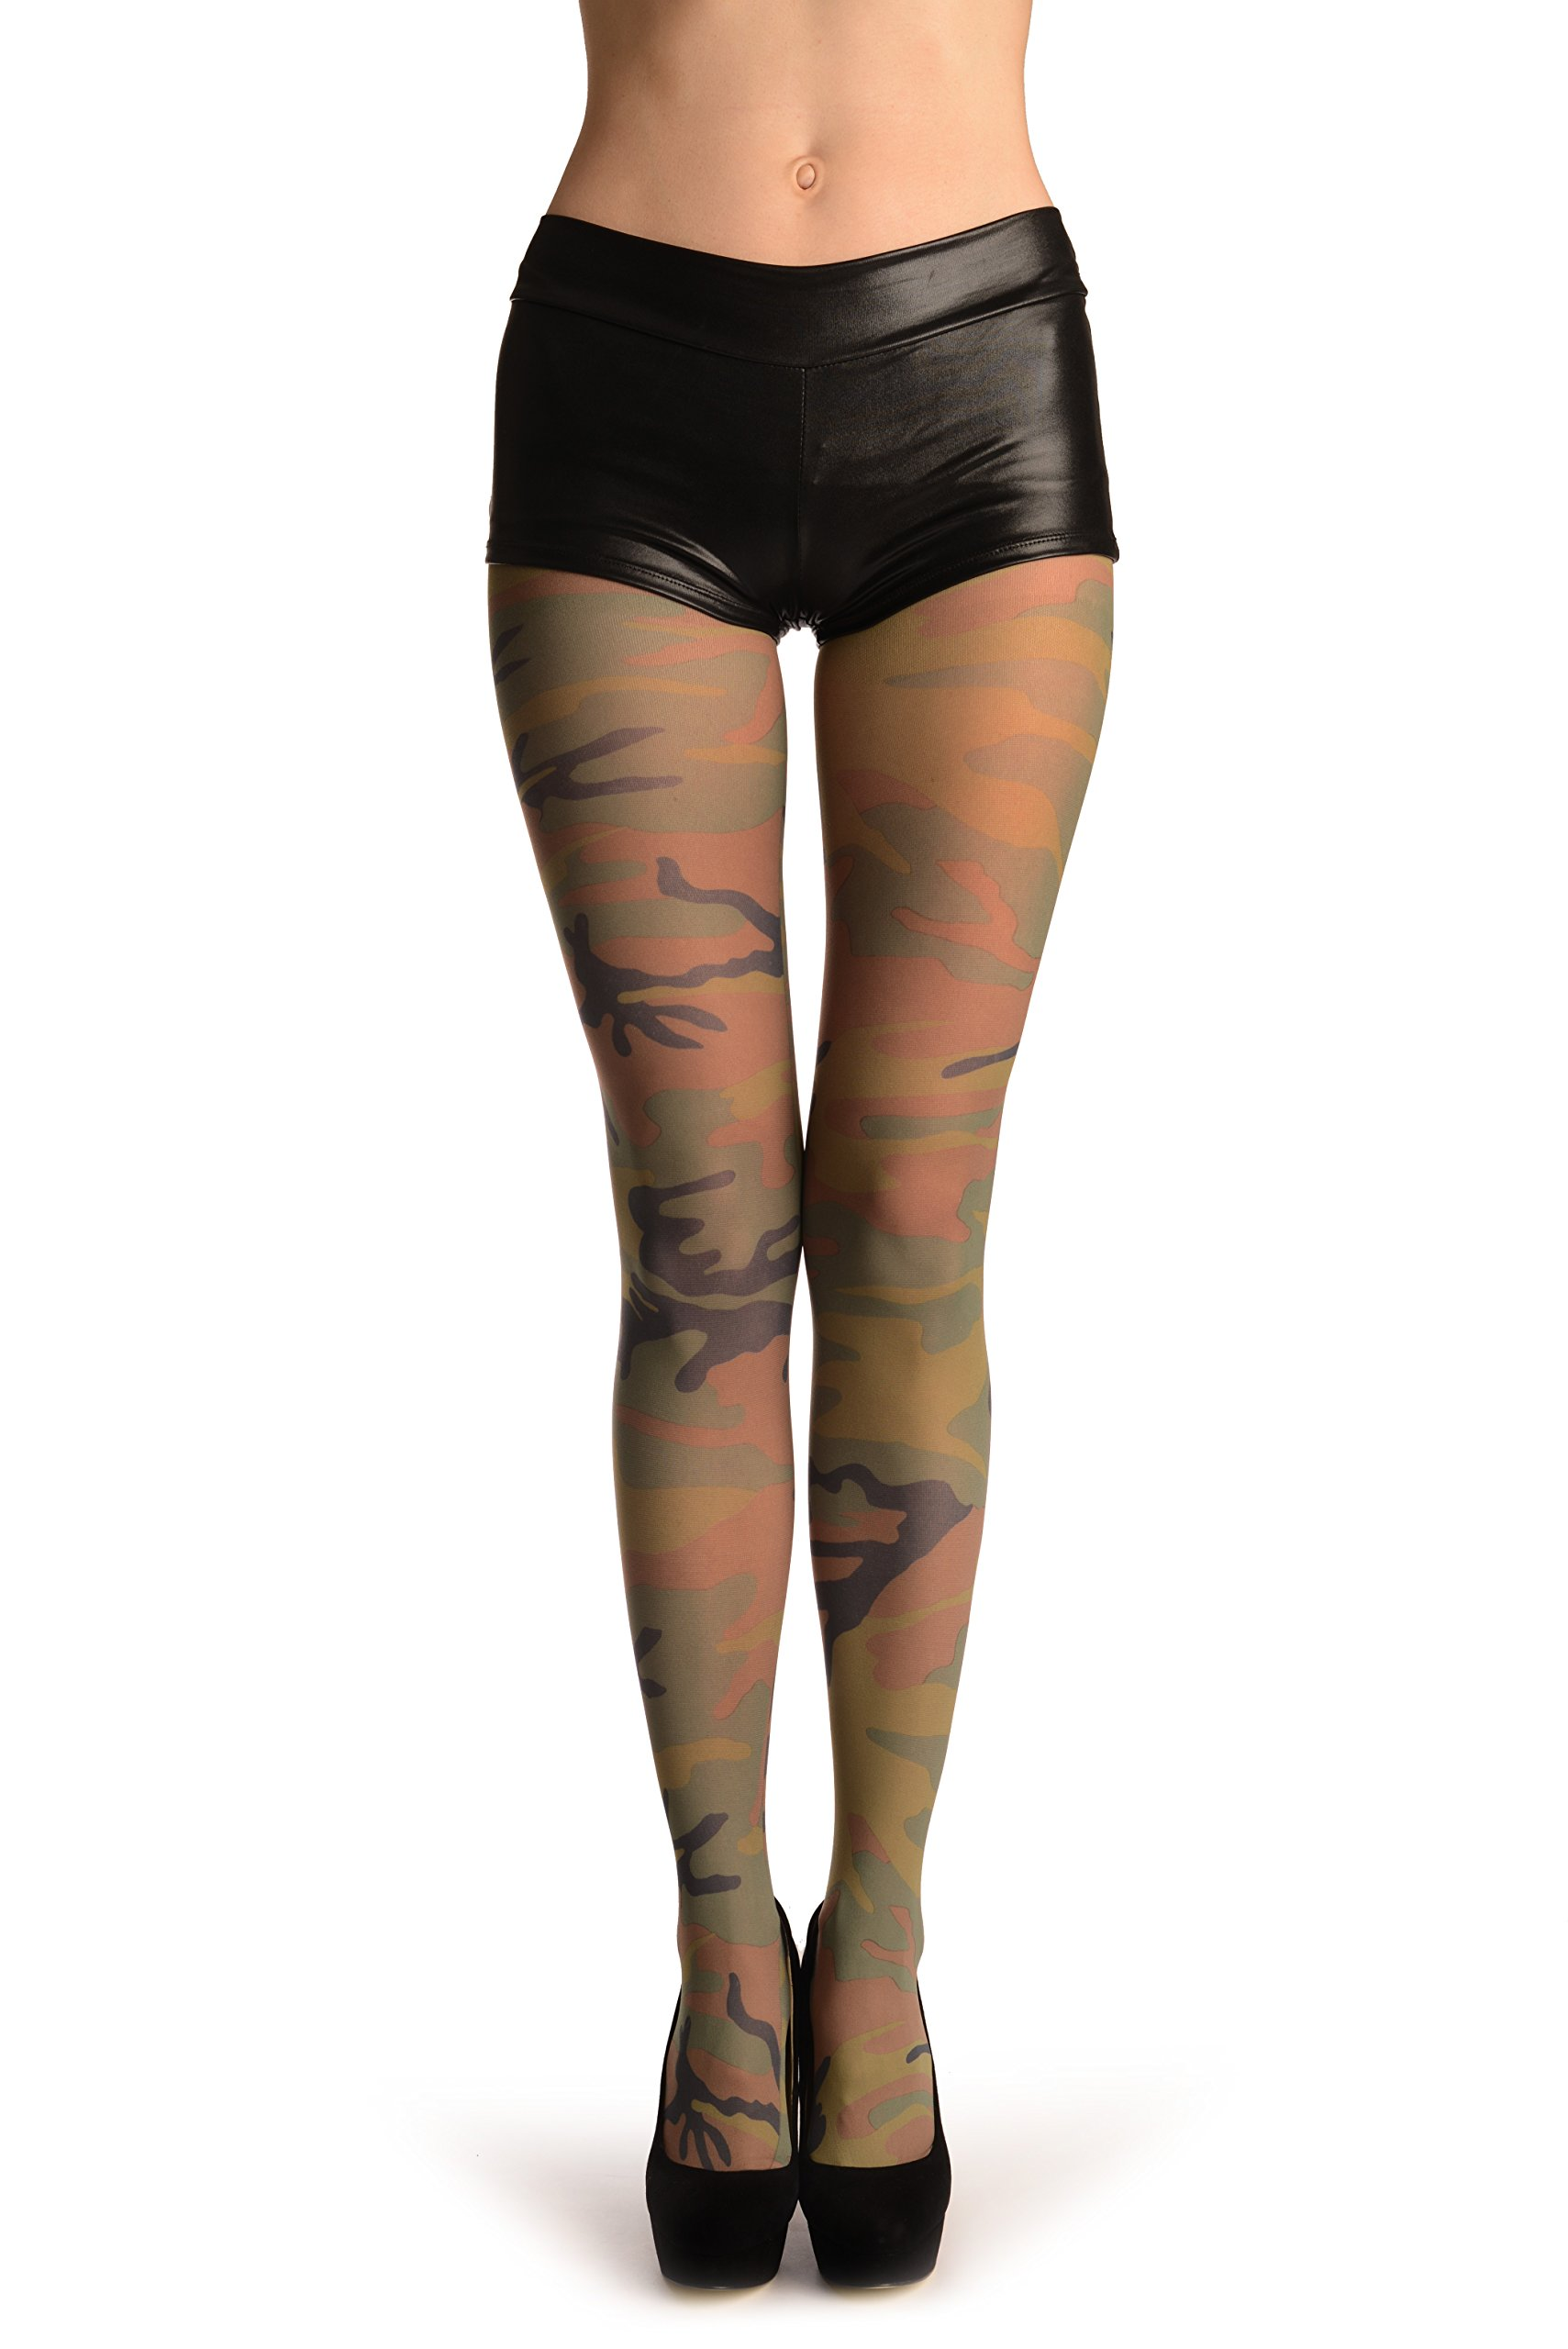 Green Camouflage - Pantyhose (Tights)